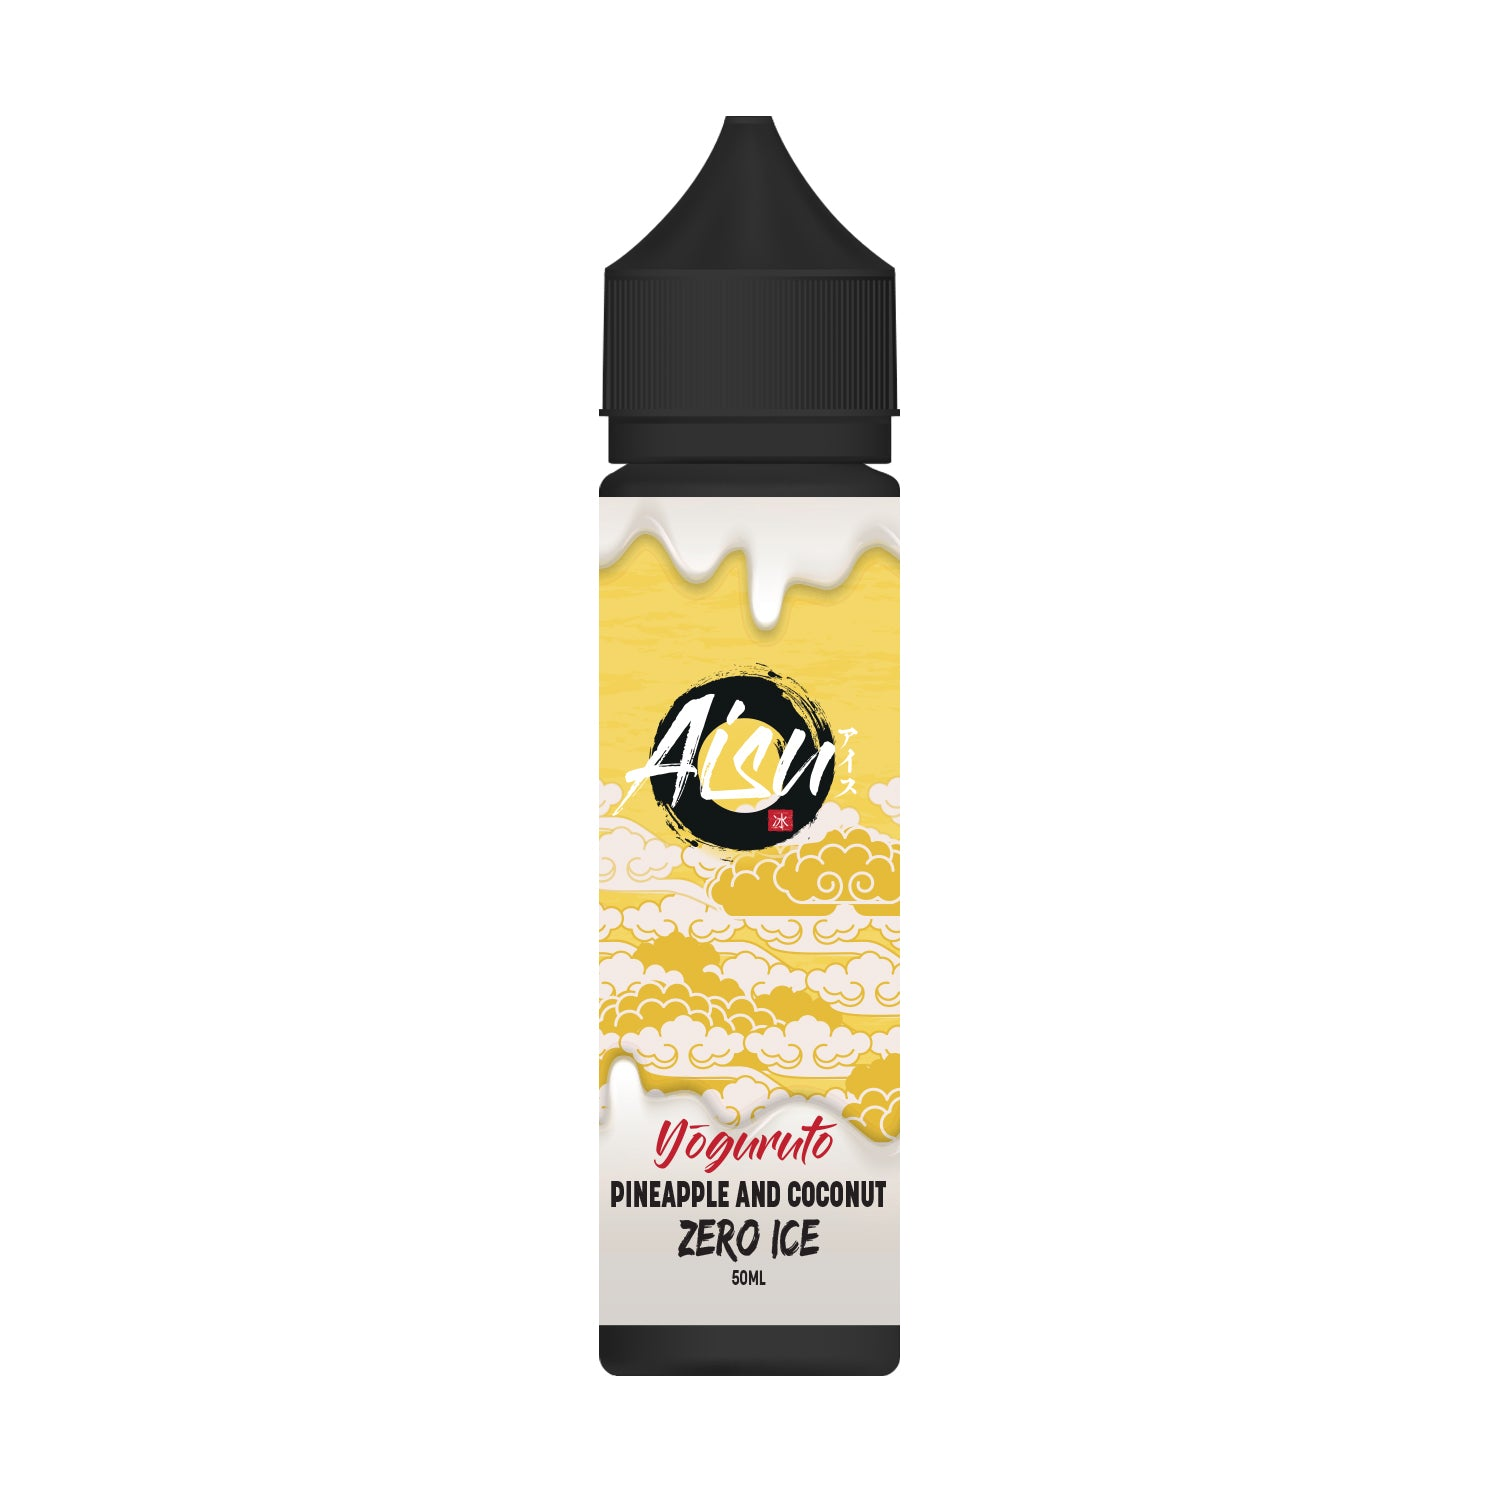 AISU Yoguruto Pineapple & Coconut ZERO ICE - Zap Juice Online UK | E-Liquid | Vape Shop  | Authentic flavours